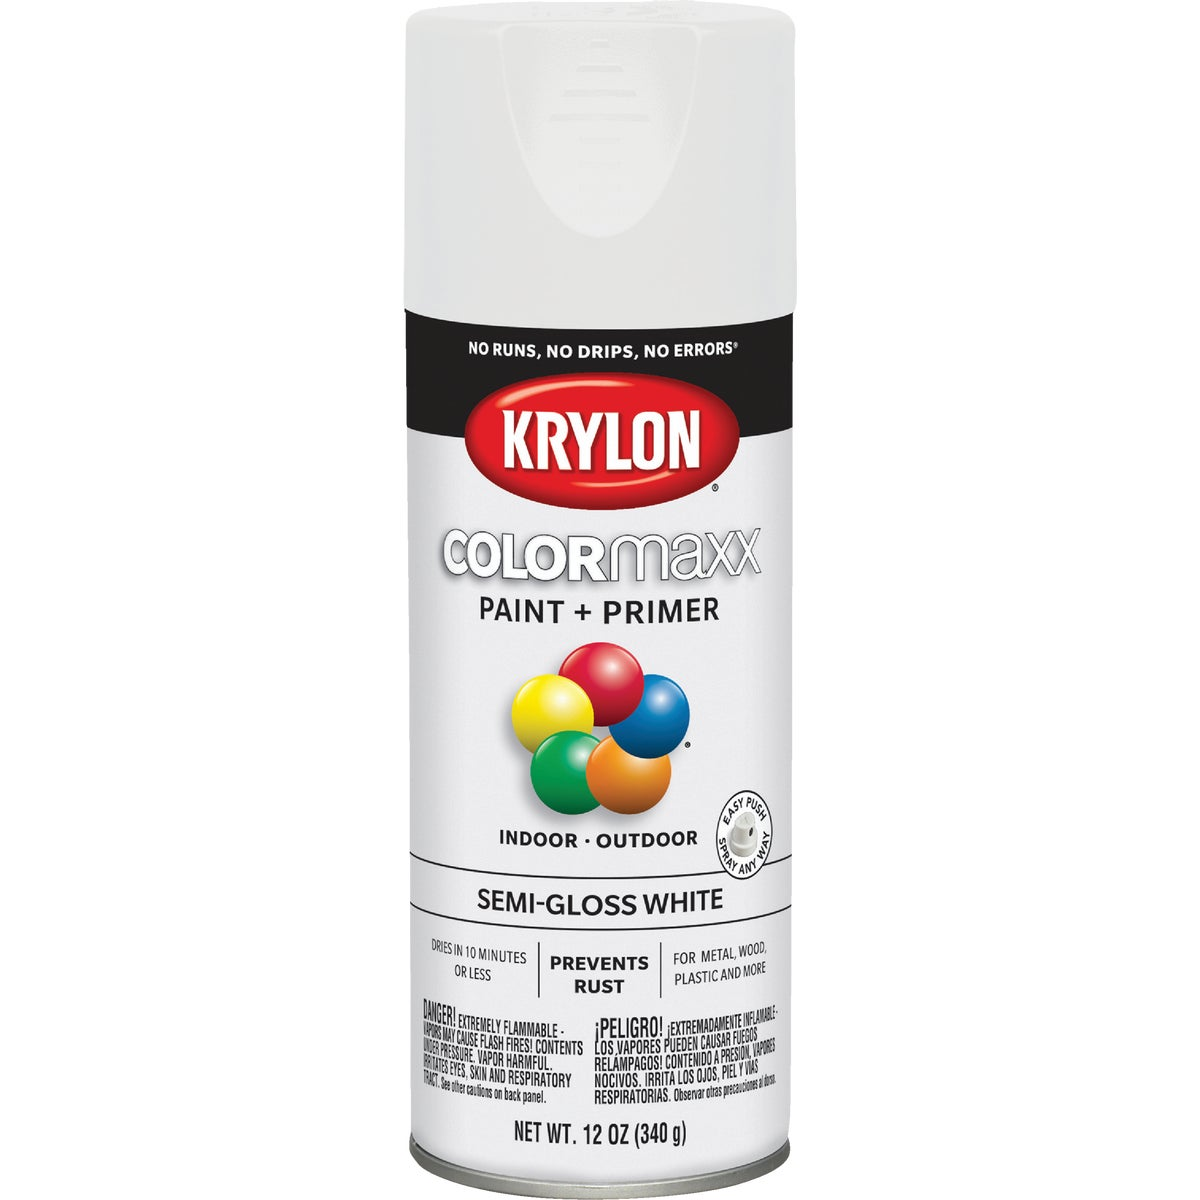 S/G WHITE SPRAY PAINT - 51508 by Krylon/consumer Div